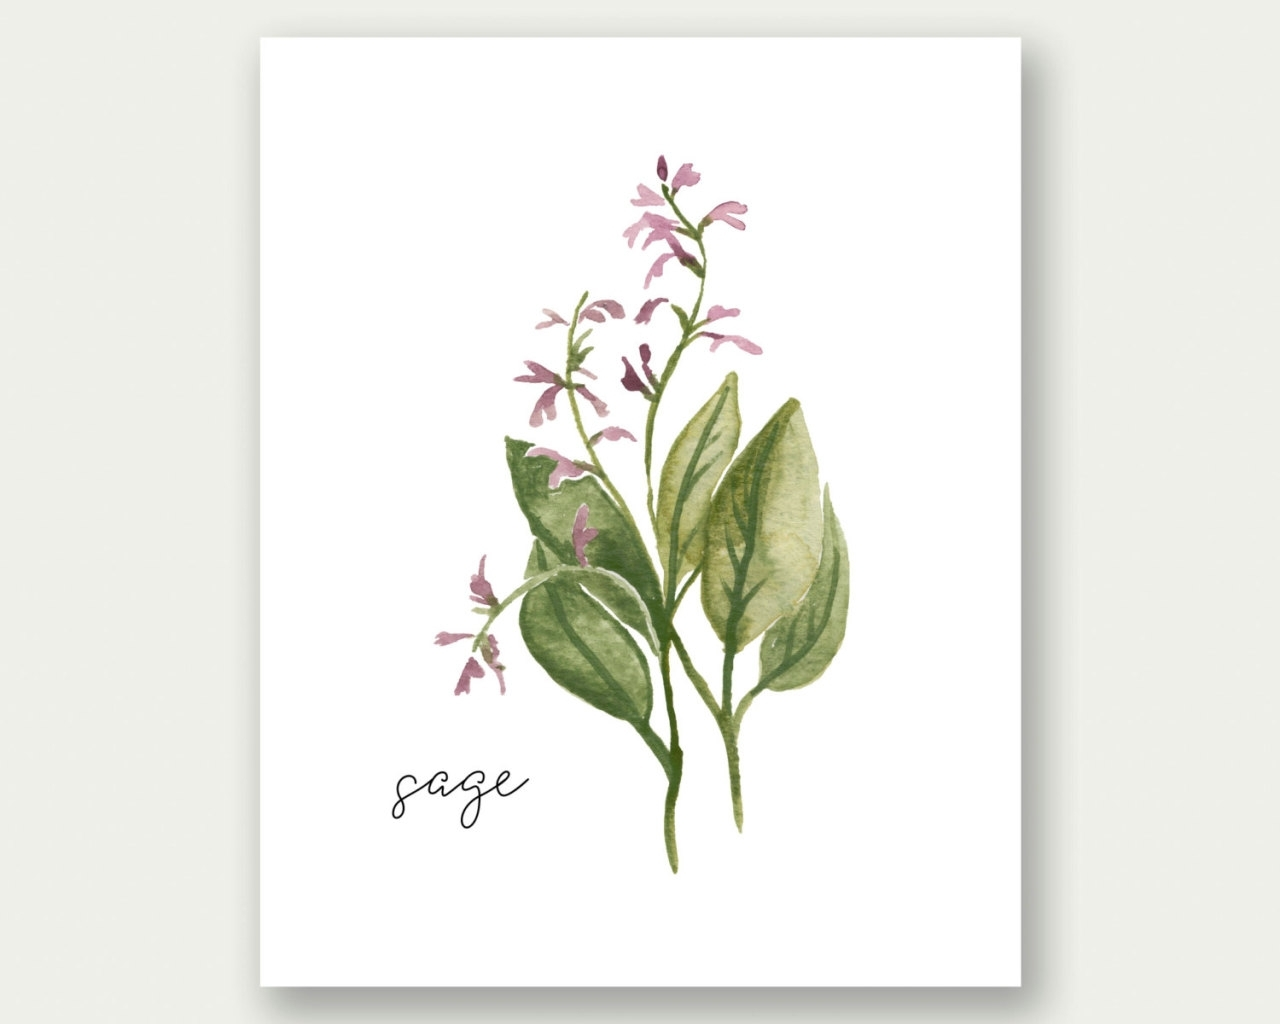 Watercolor Landcolor Skycolor — Herb Wall Art, Herb Print, Sage Wall With Regard To Latest Herb Wall Art (Gallery 6 of 20)